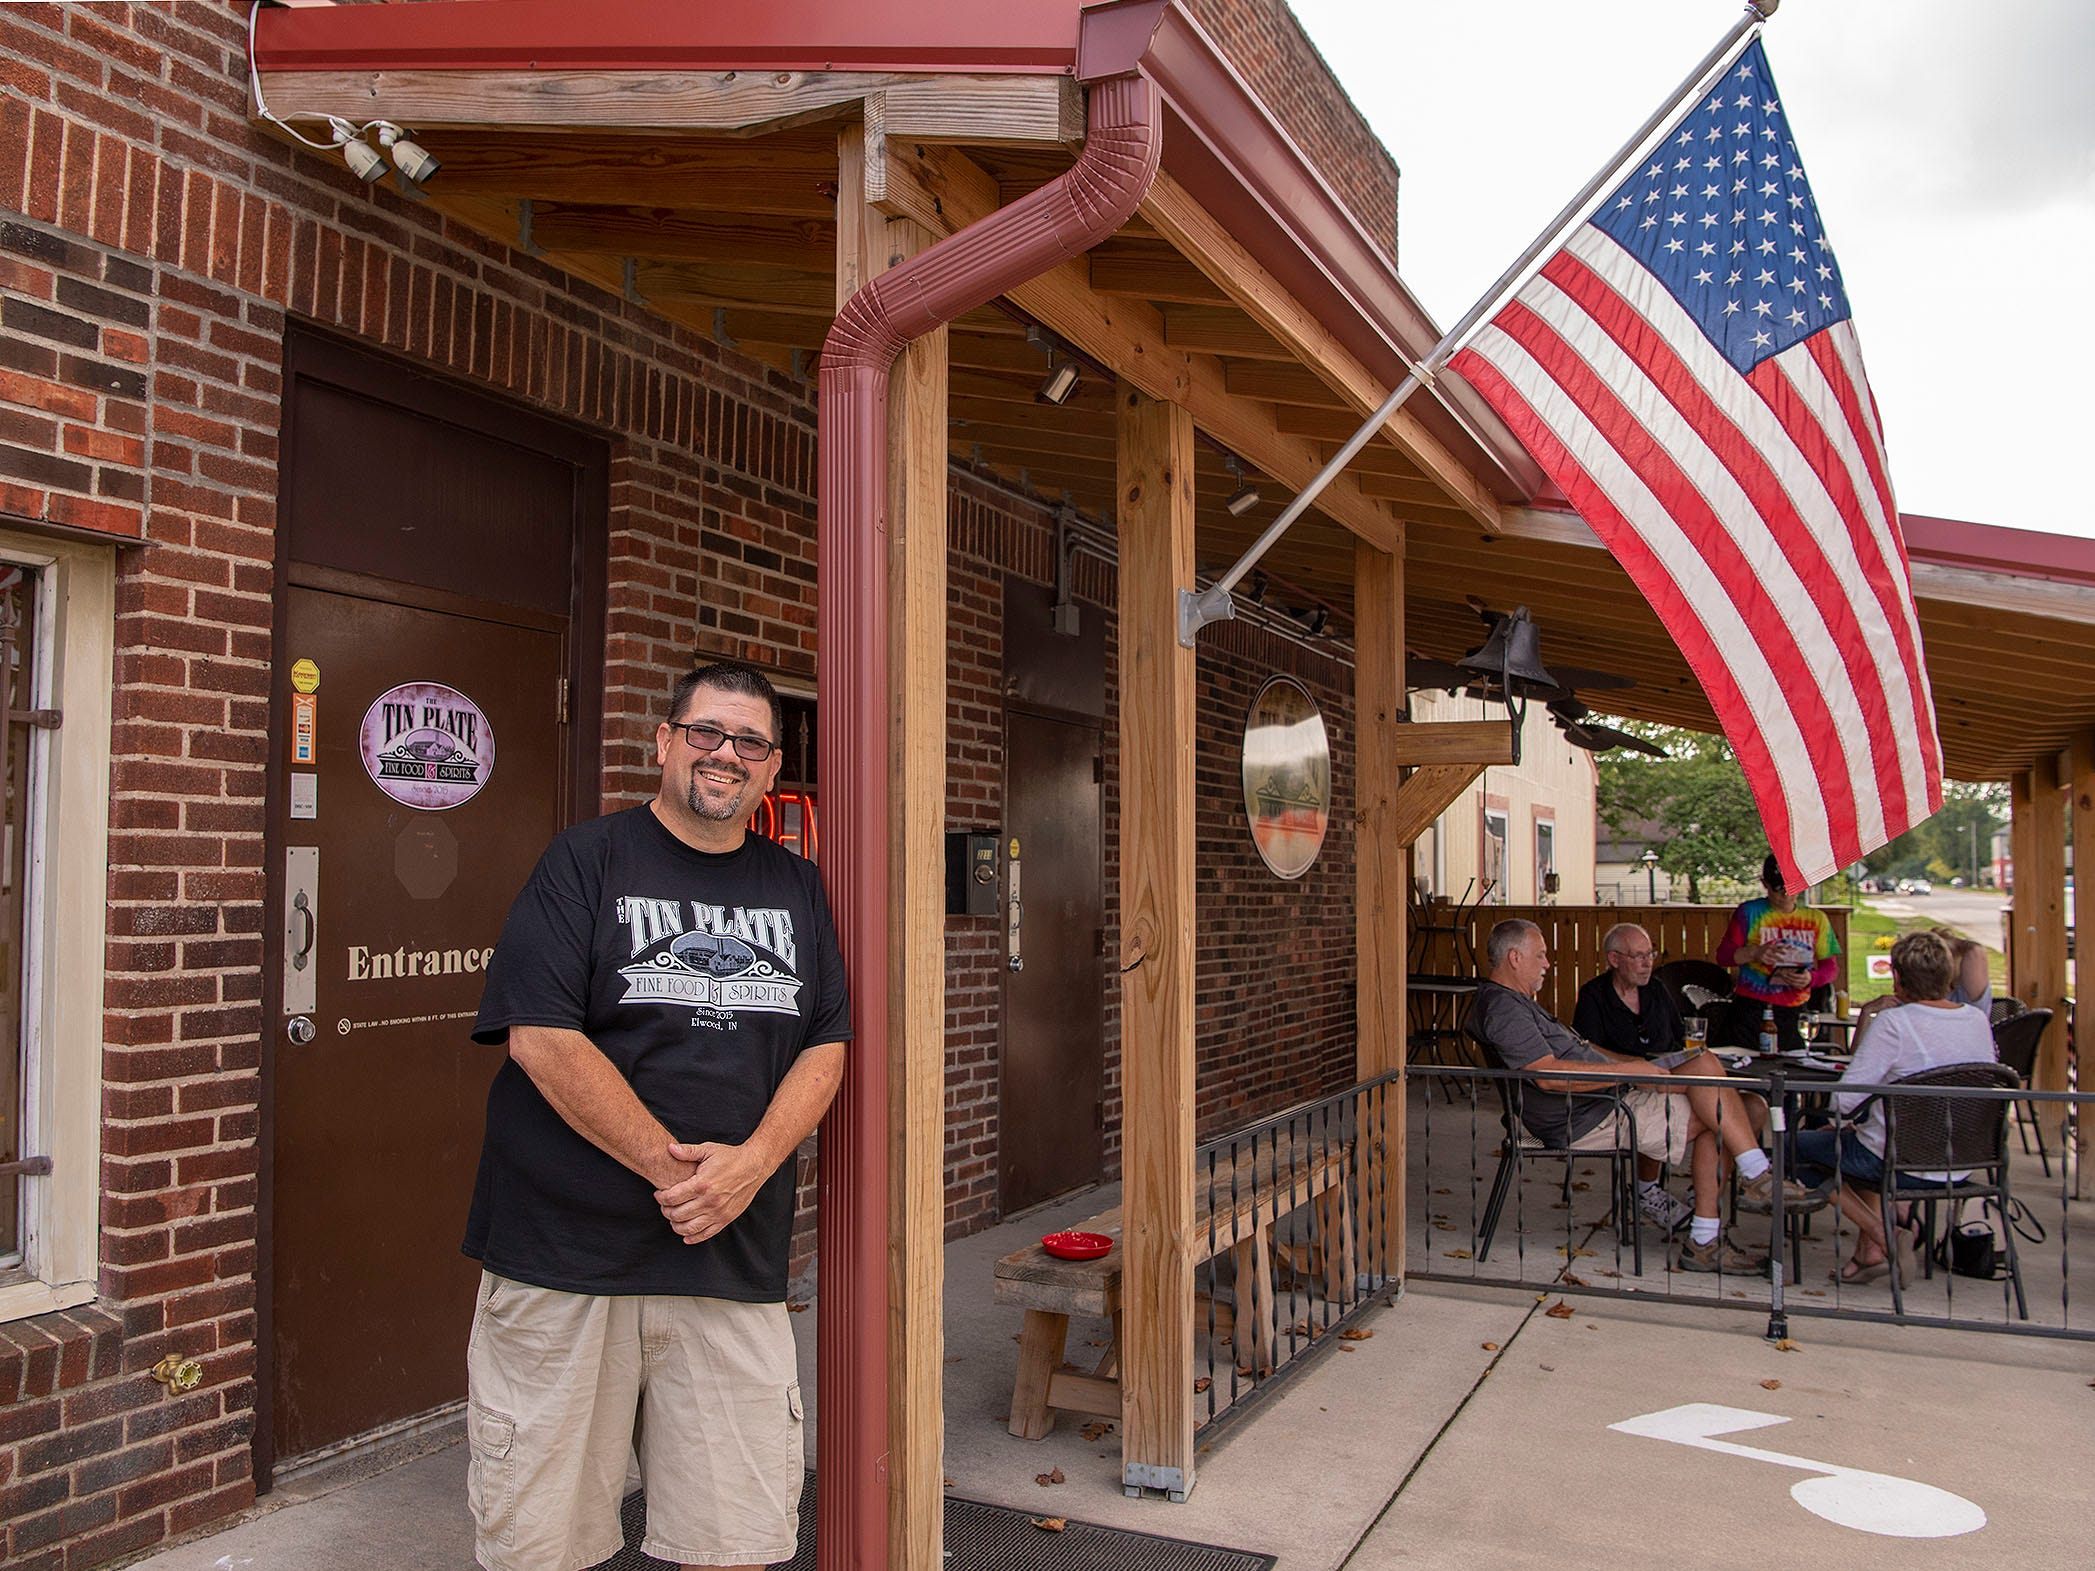 "Patrick Rice Jr. stands outside the Tin Plate restaurant in Elwood. The building was constructed in 1916 and served mainly as a watering hole for workers at the hot mill tin factory across the street. Rice and family members helped renovate the building into the restaurant, which opened in 2015. ""Our hard work paid off,"" he says. ""It goes to show that you can do it, man. The American dream – it's out there."""